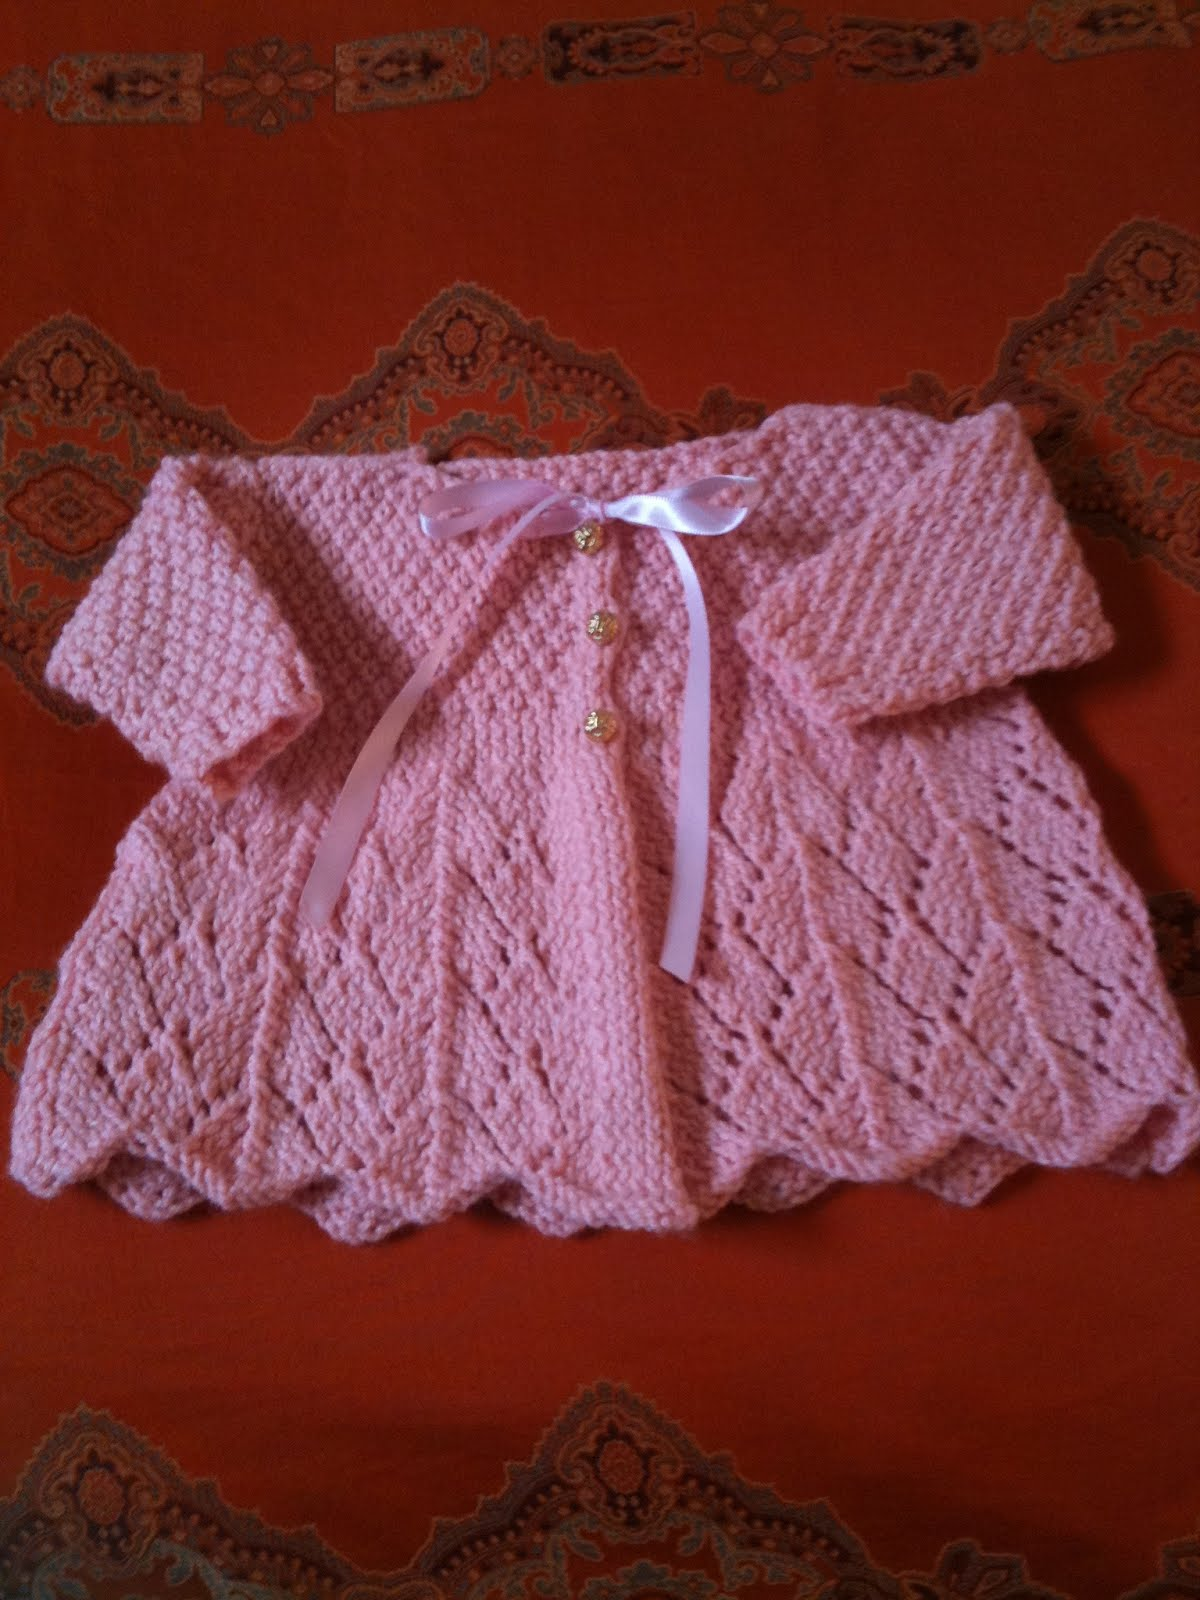 Baby Jumper Knitting Pattern Free : La Dolce Duchessa: Lace Baby Sweater